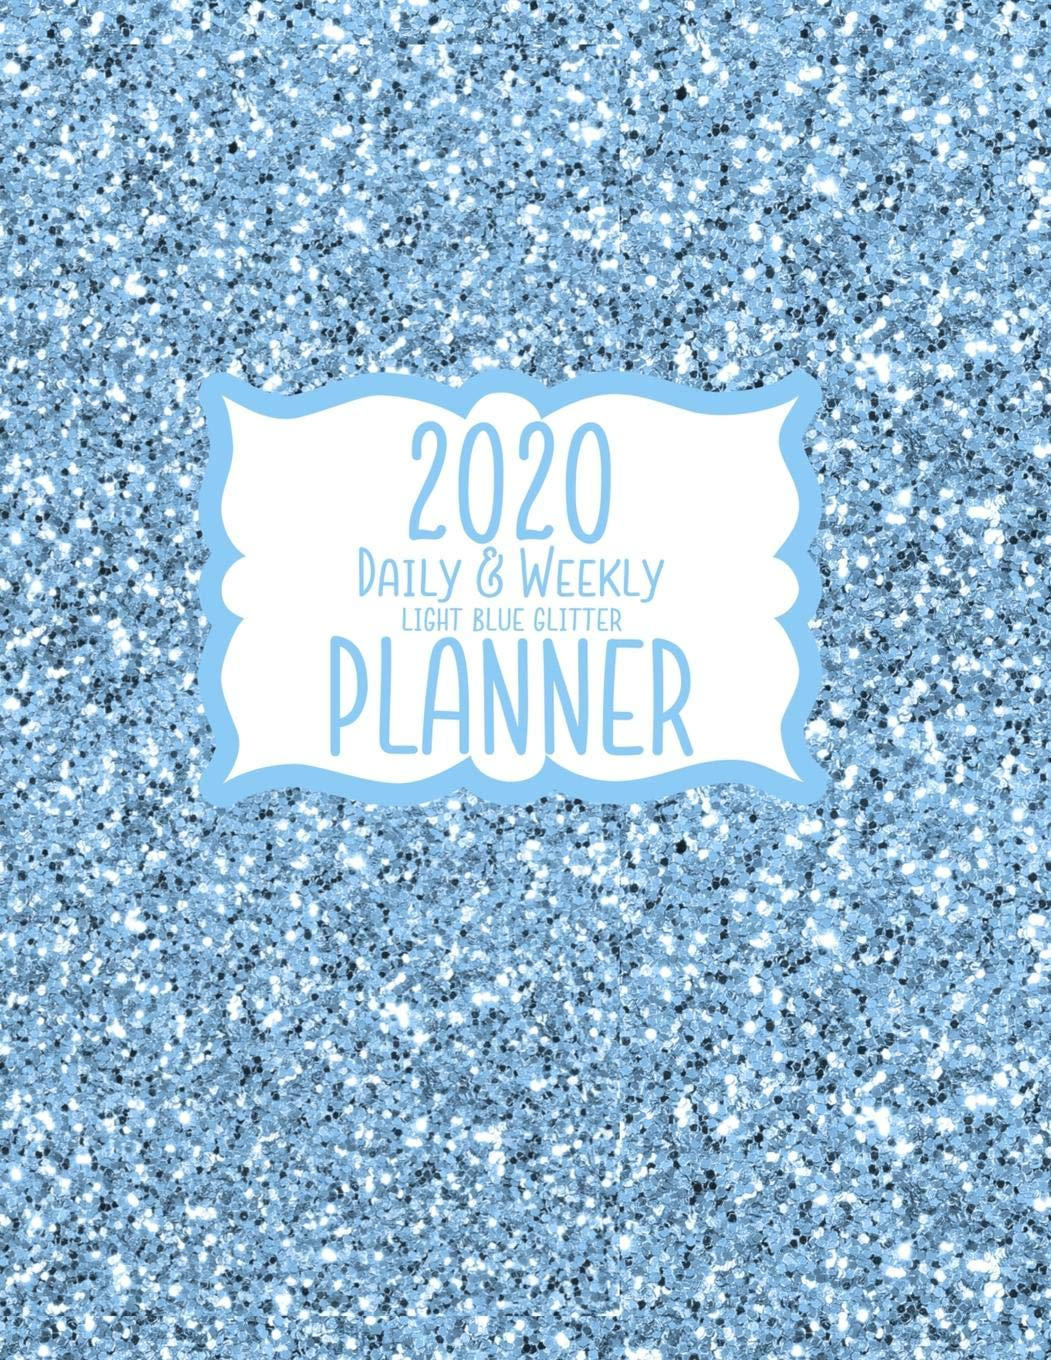 2020 Daily & Weekly Light Blue Glitter Planner: 8.5 x 11 ...